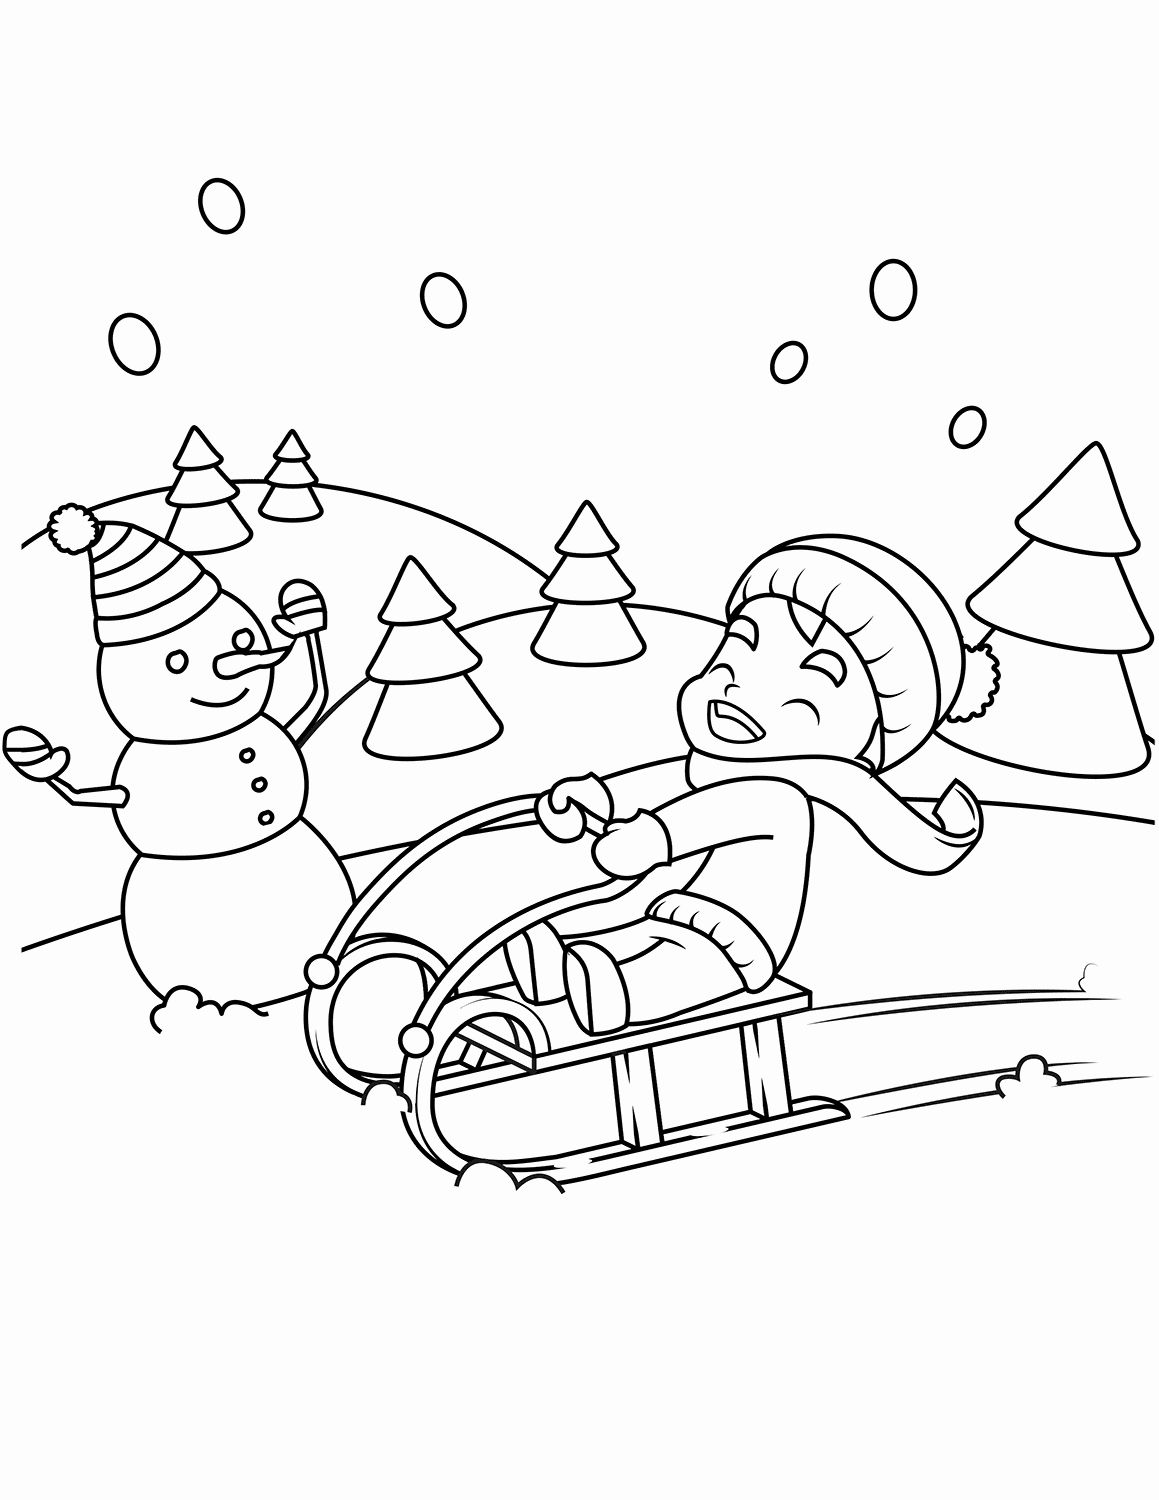 Kids Coloring Pages Winter Best Of Free Printable Winter Coloring